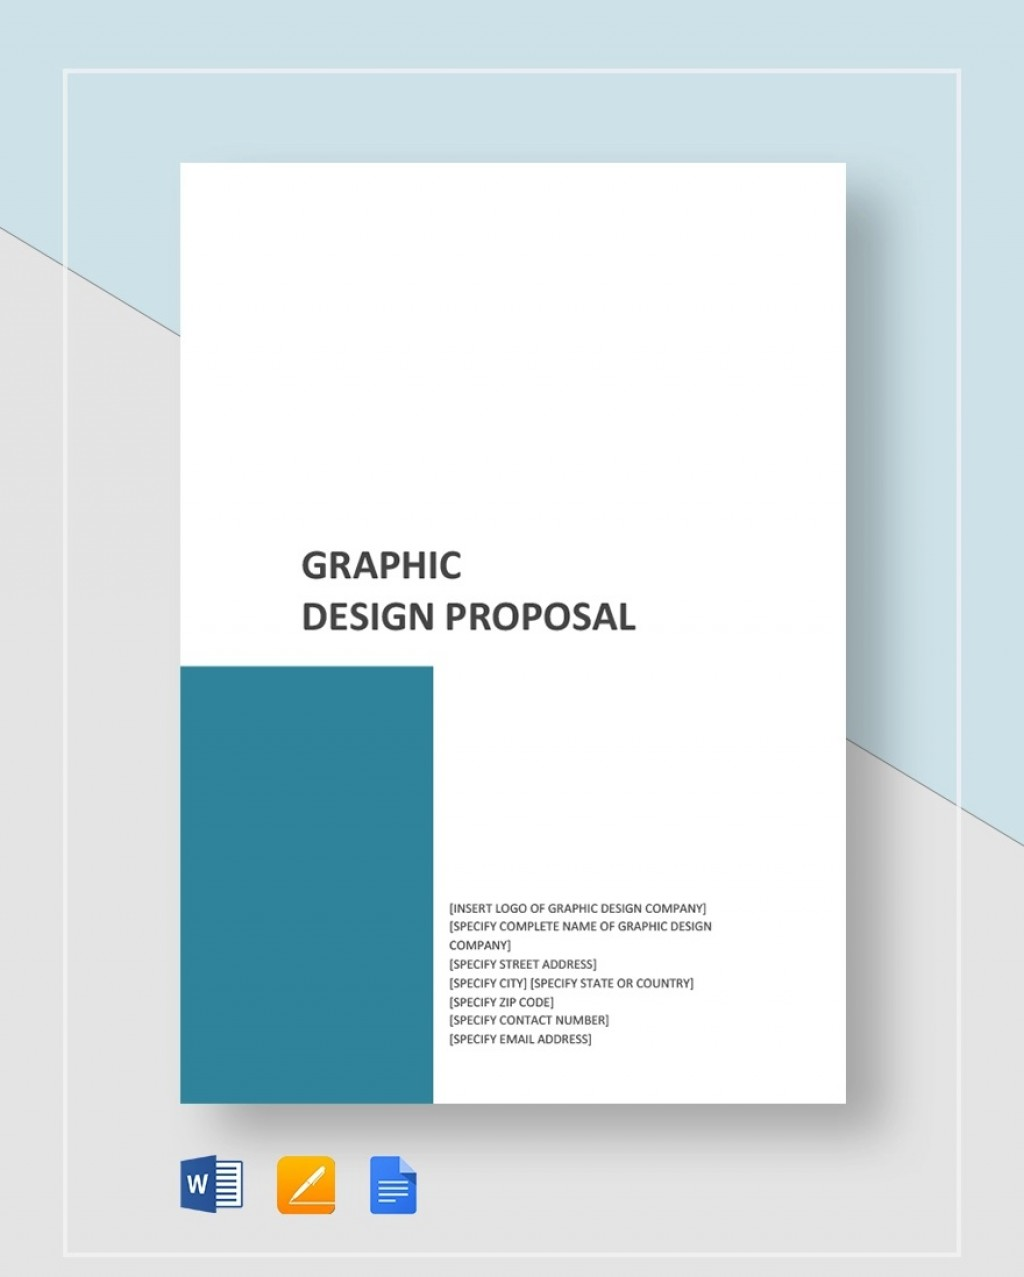 Template Graphic Design Proposal Idea  Free FreelanceLarge